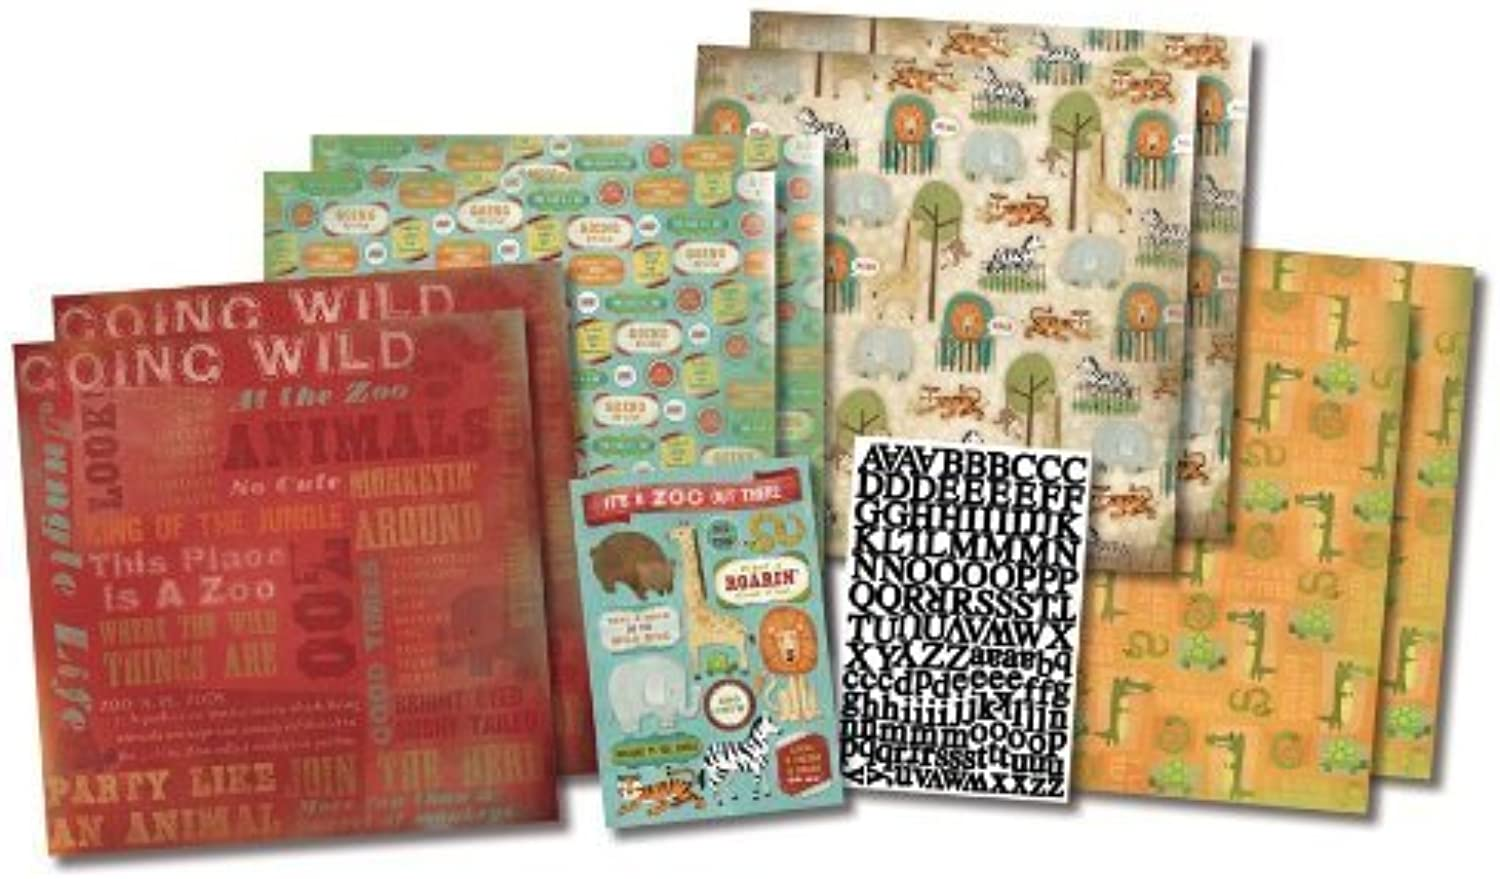 Karen FosterThemed Paper Stickers and Scrapbook Kit, Trip to The Zoo by Karen Foster